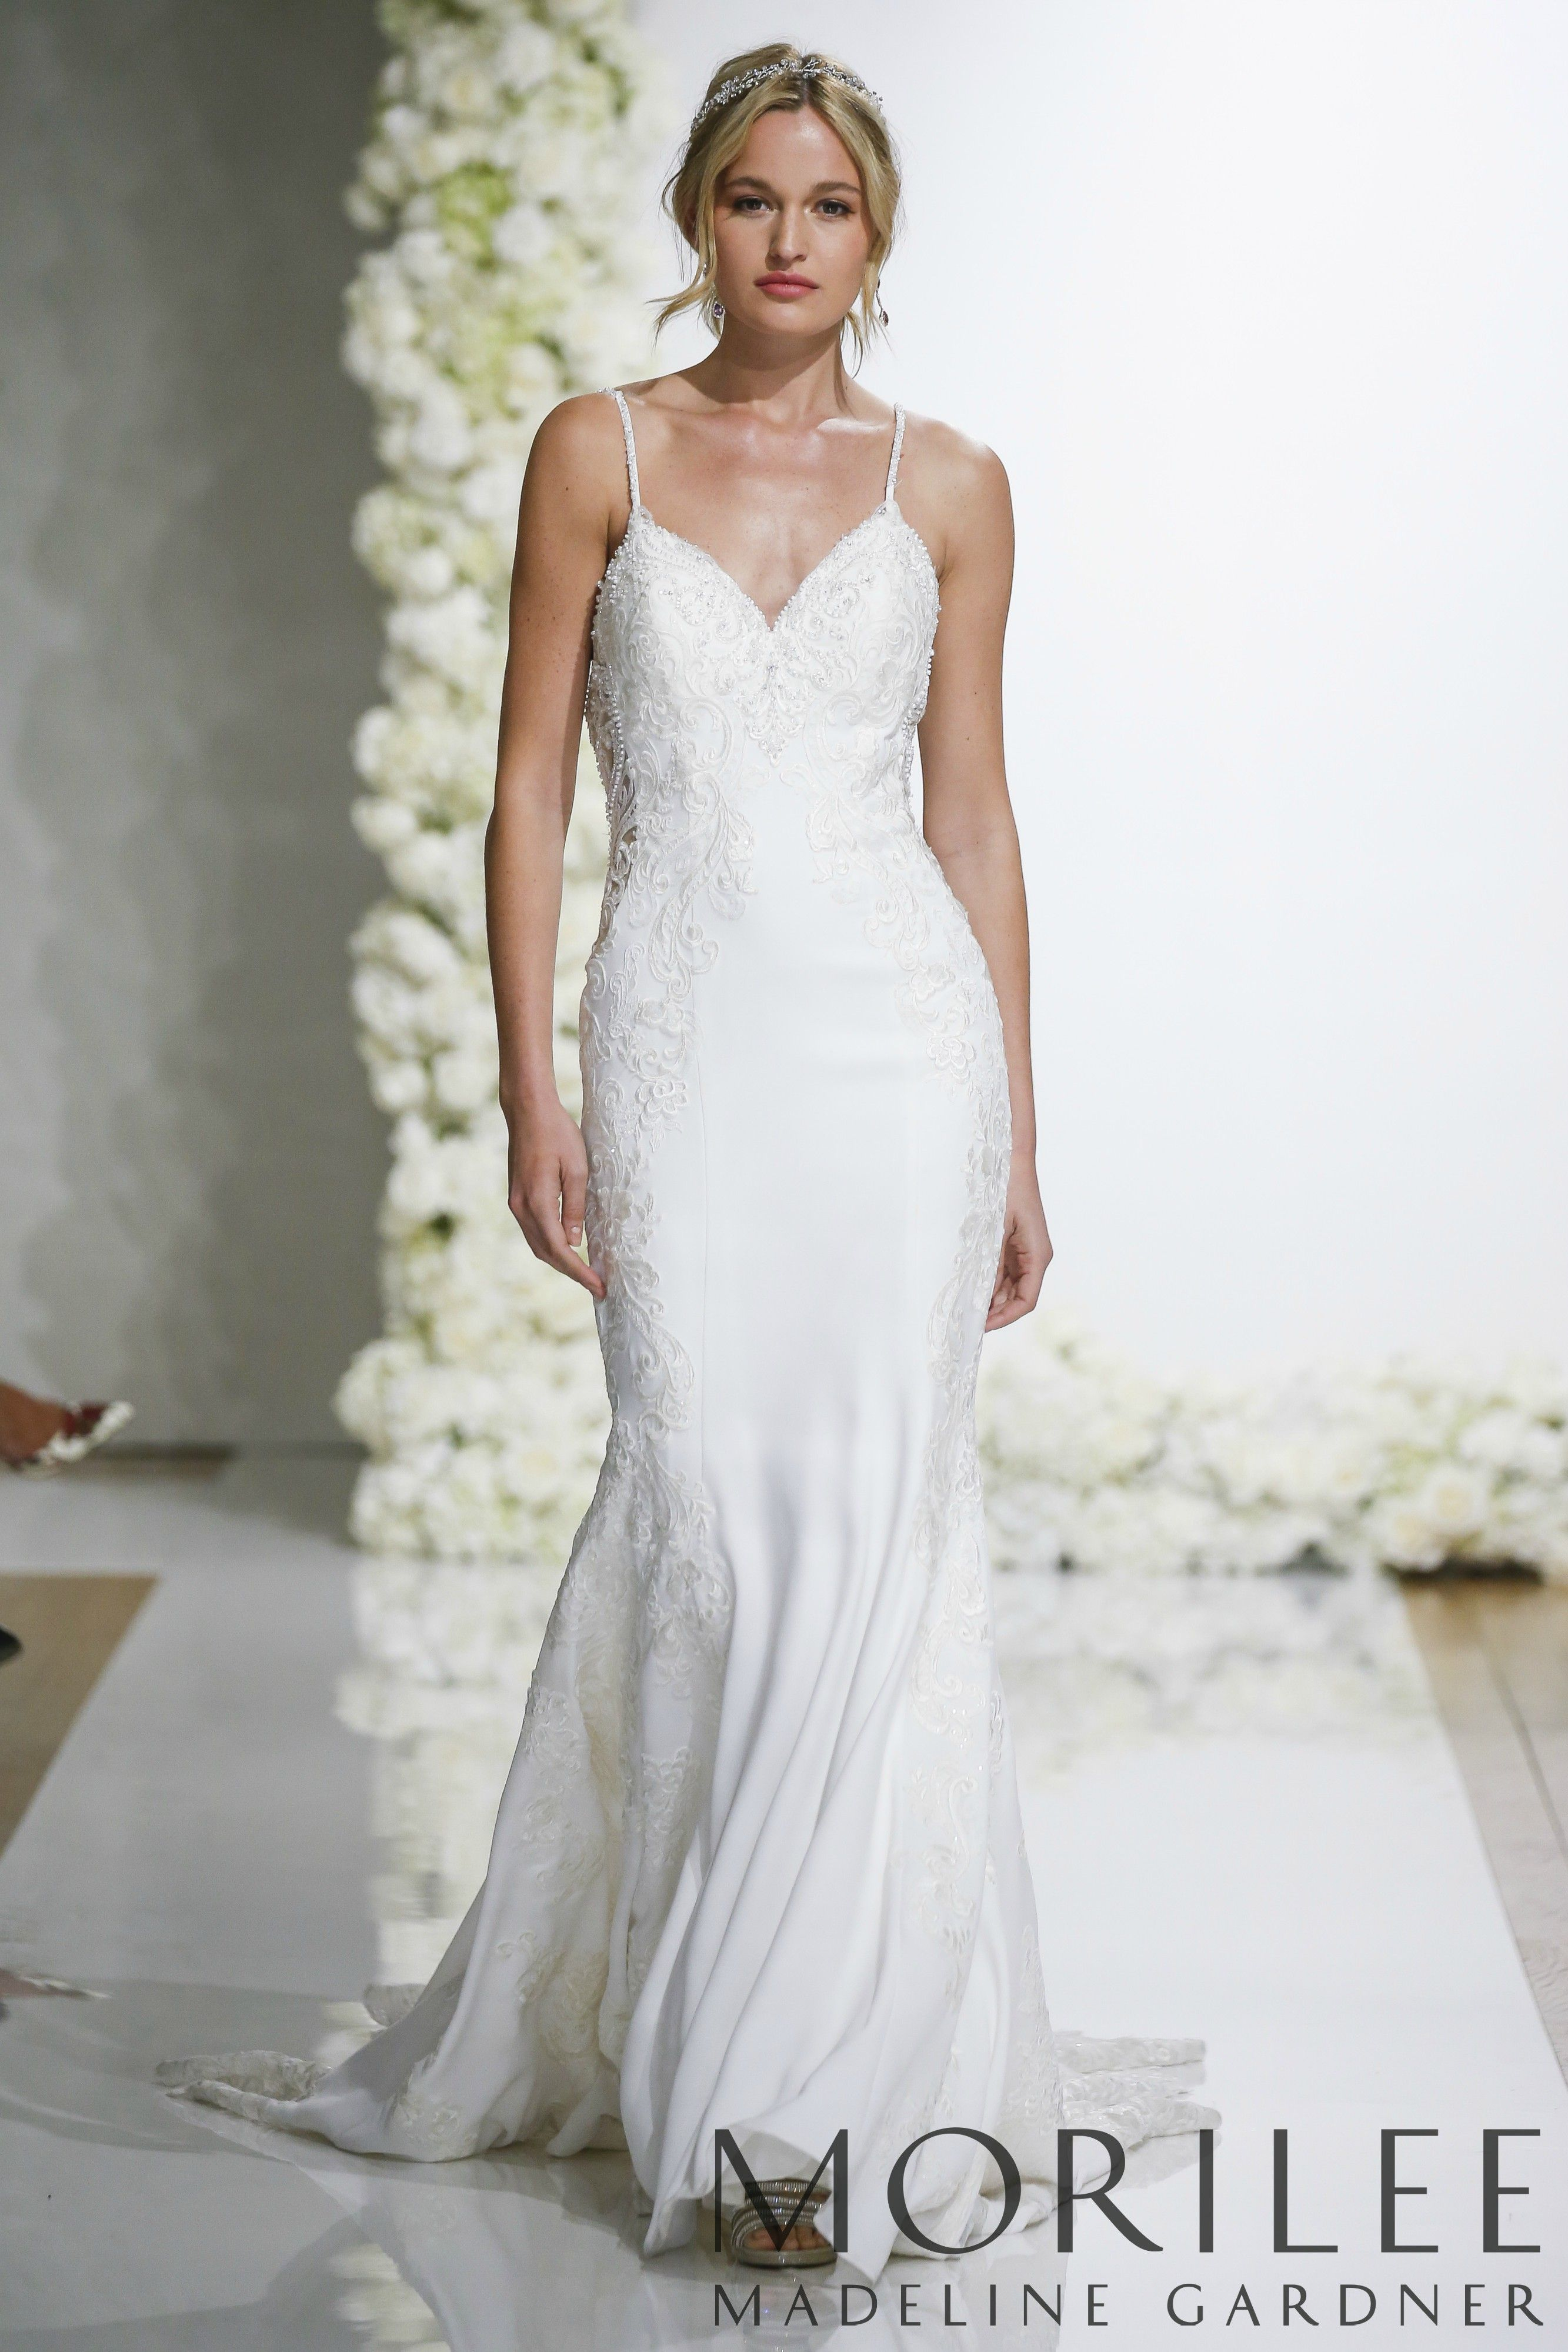 005609a4 Morilee | Madeline Gardner, Lizzie Style 8283 | Form Fitting Crepe Wedding  Dress Featuring Beaded, Embroidered Appliqués with Sheer Sides and Sheer,  ...